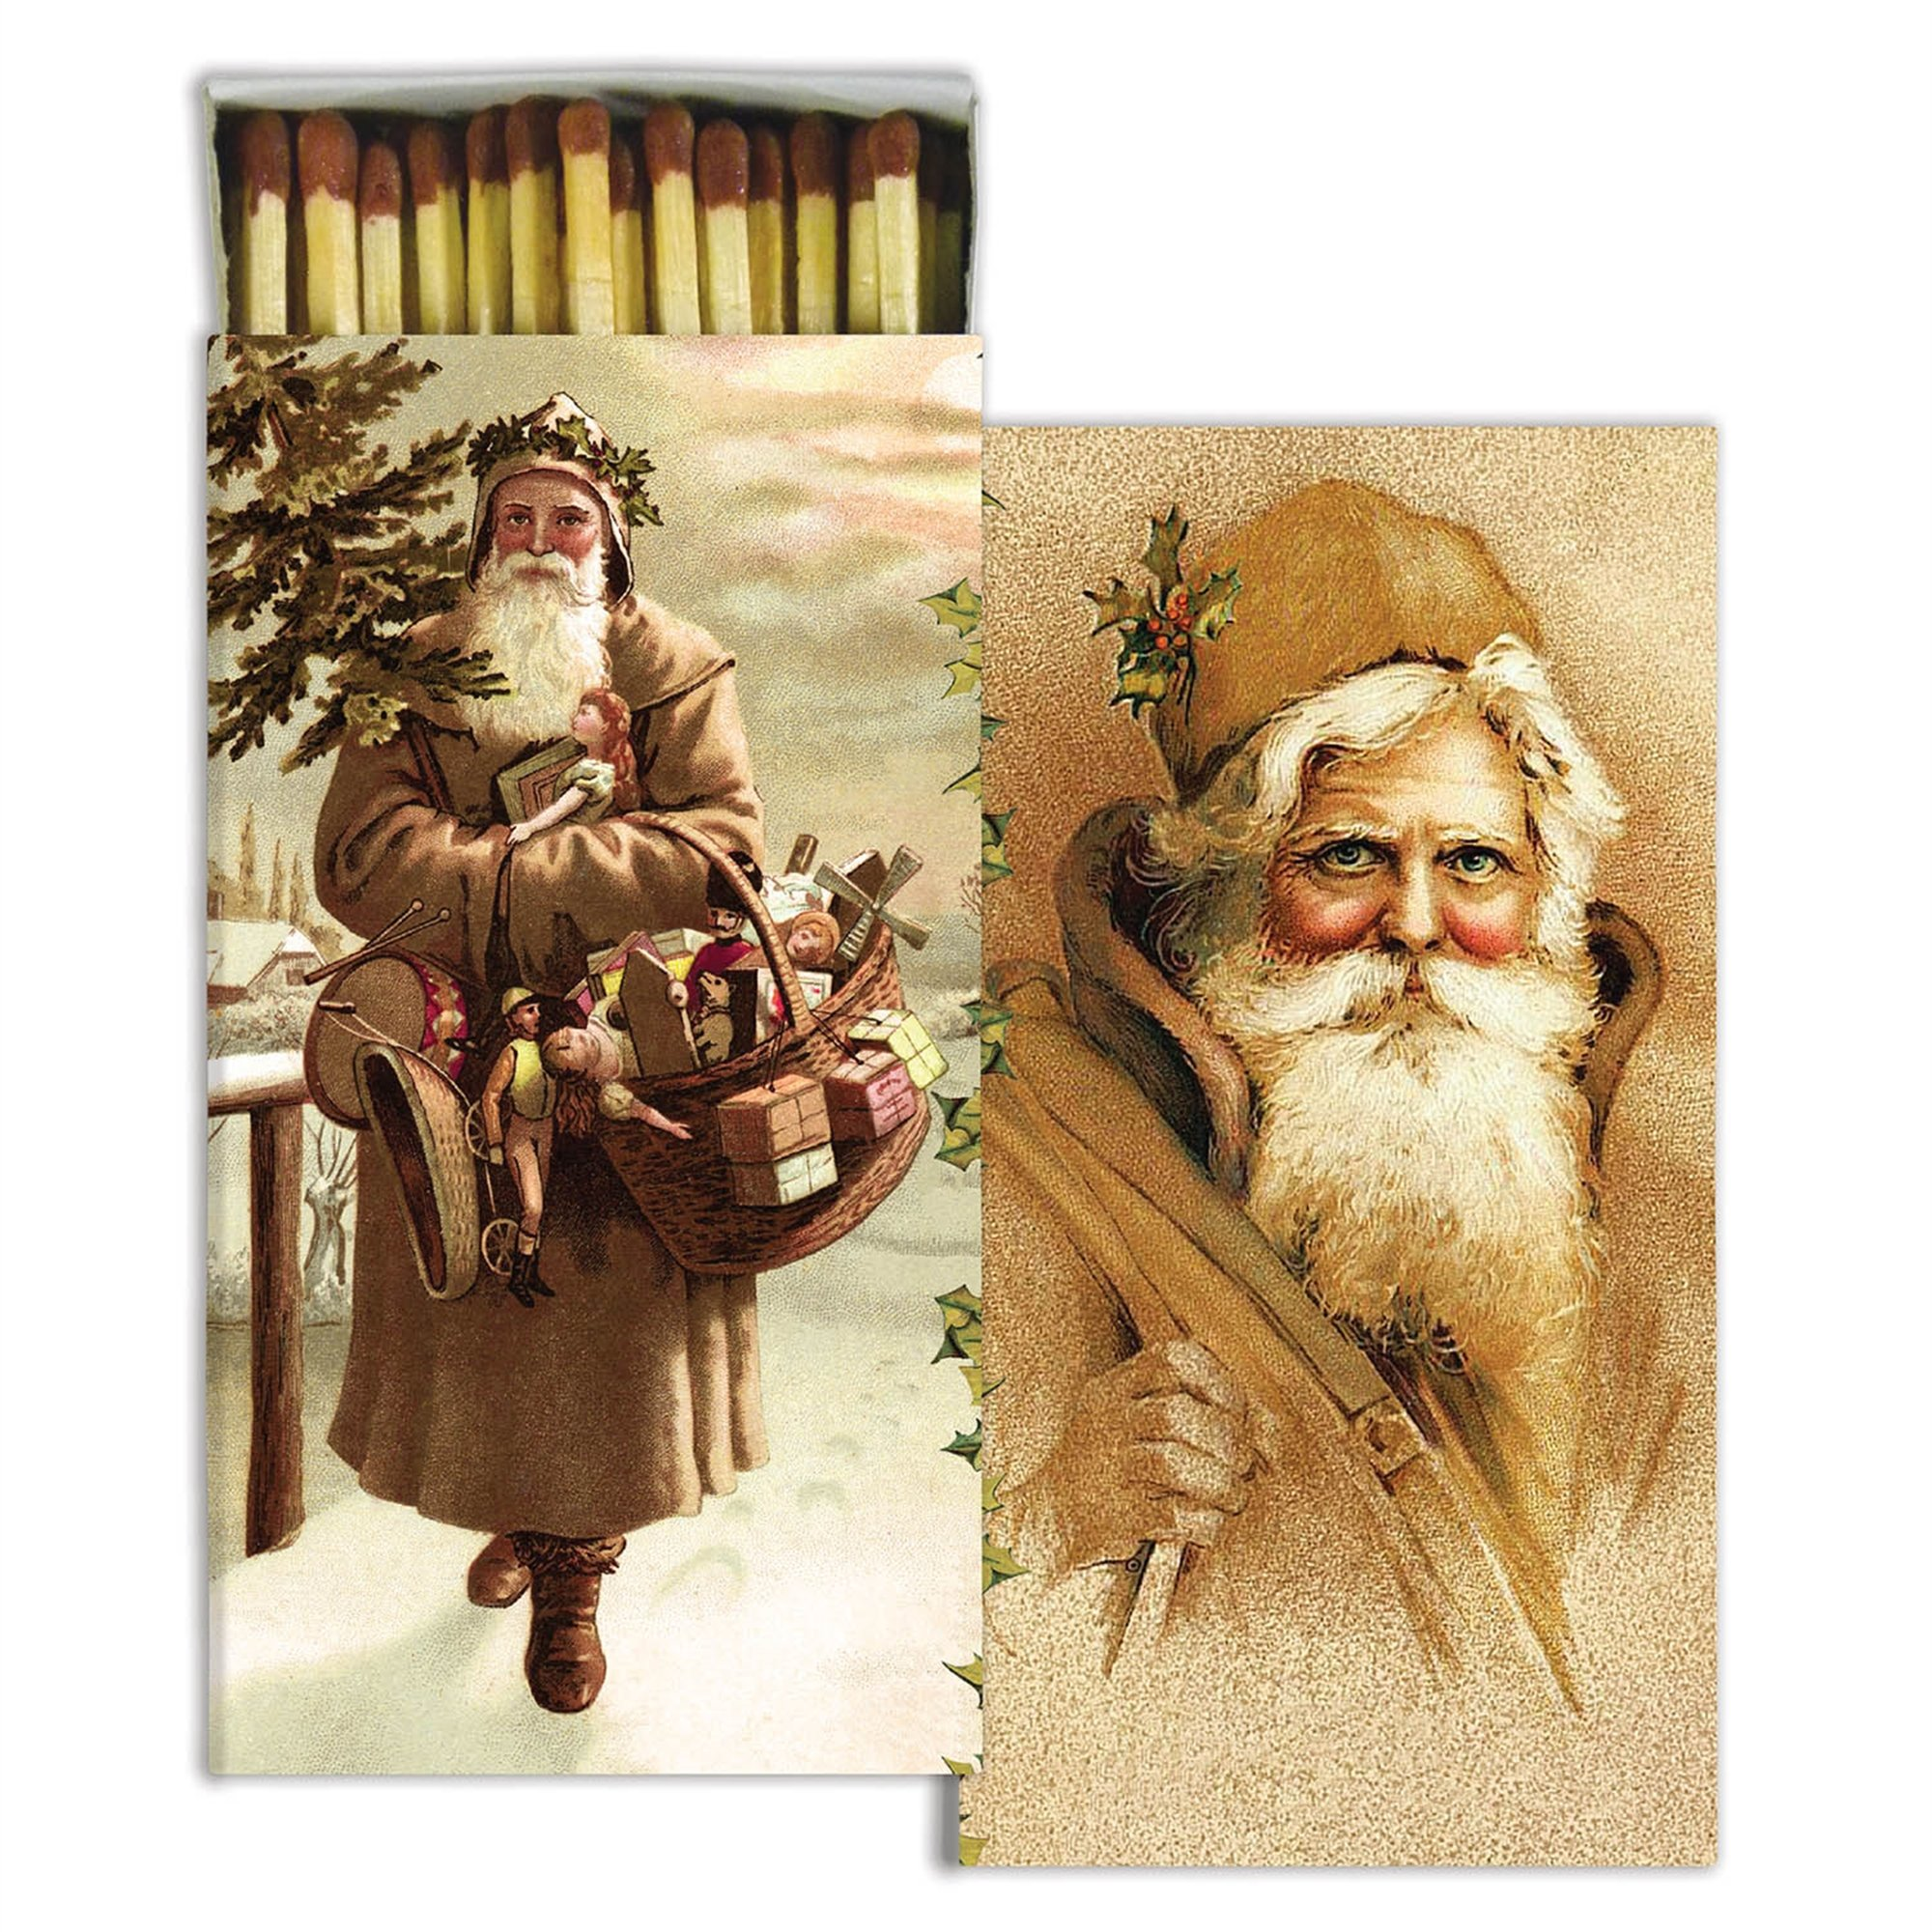 HomArt Large Decorative Father Christmas Santa Match Boxes (Set of 12)